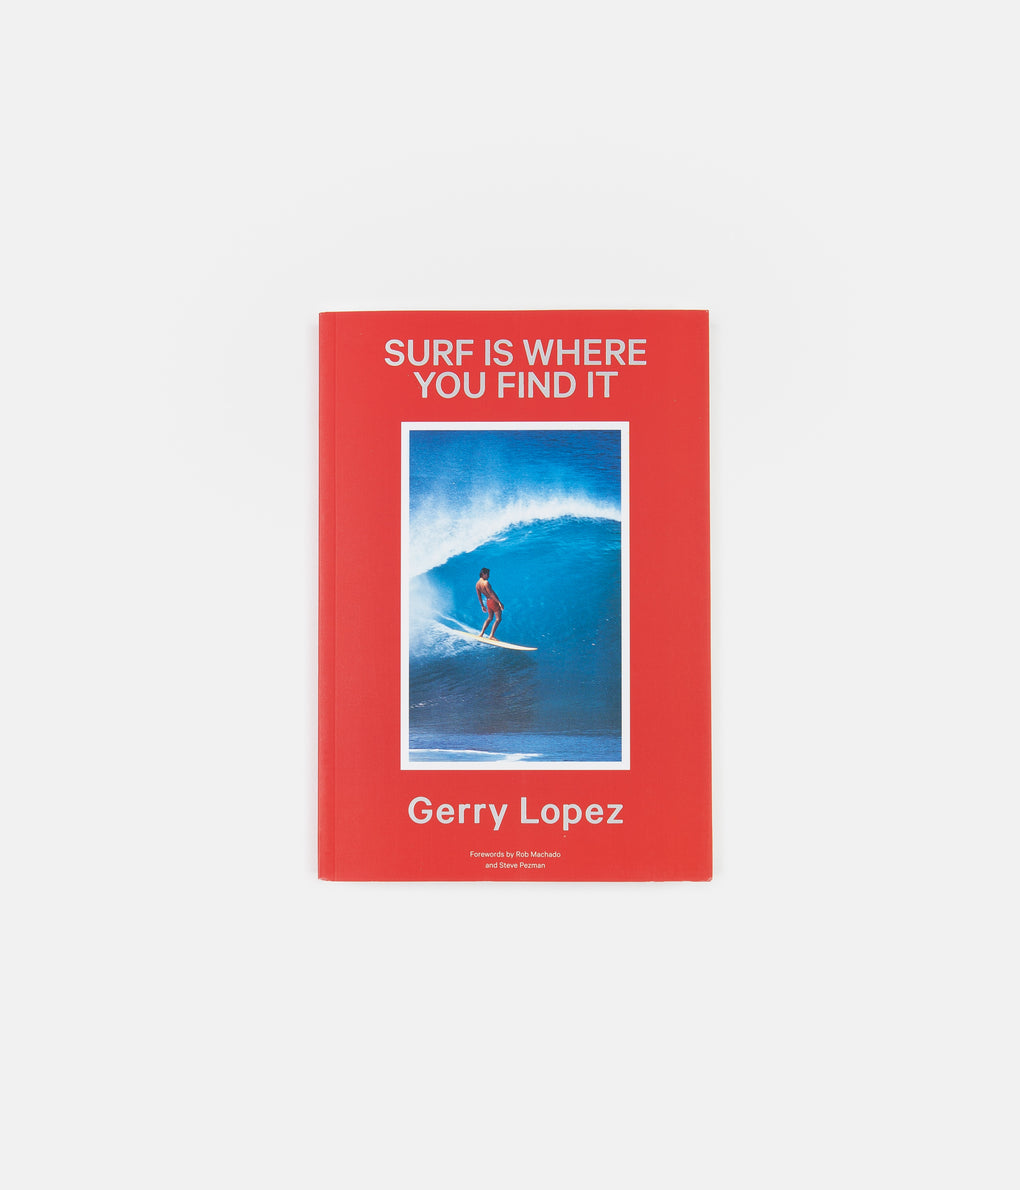 Surf Is Where You Find It (Softcover) - Gerry Lopez